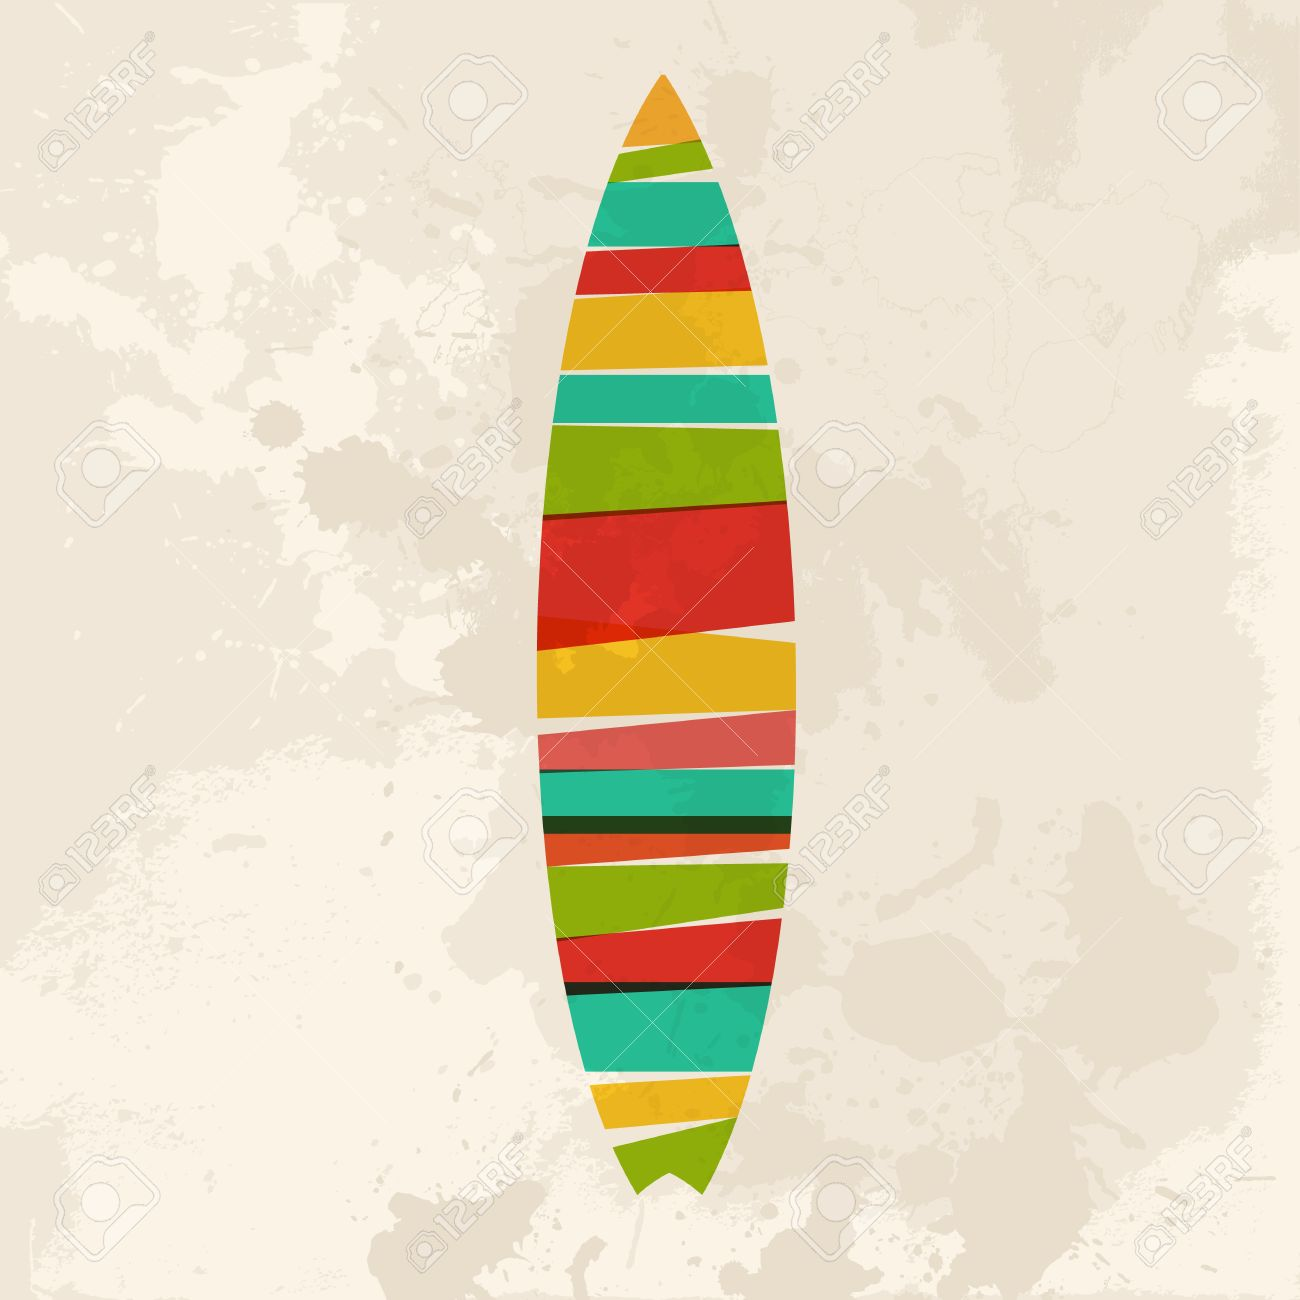 Surfboard clipart transparent background png royalty free stock Diversity Colors Transparent Bands Surfboard Over Grunge ... png royalty free stock